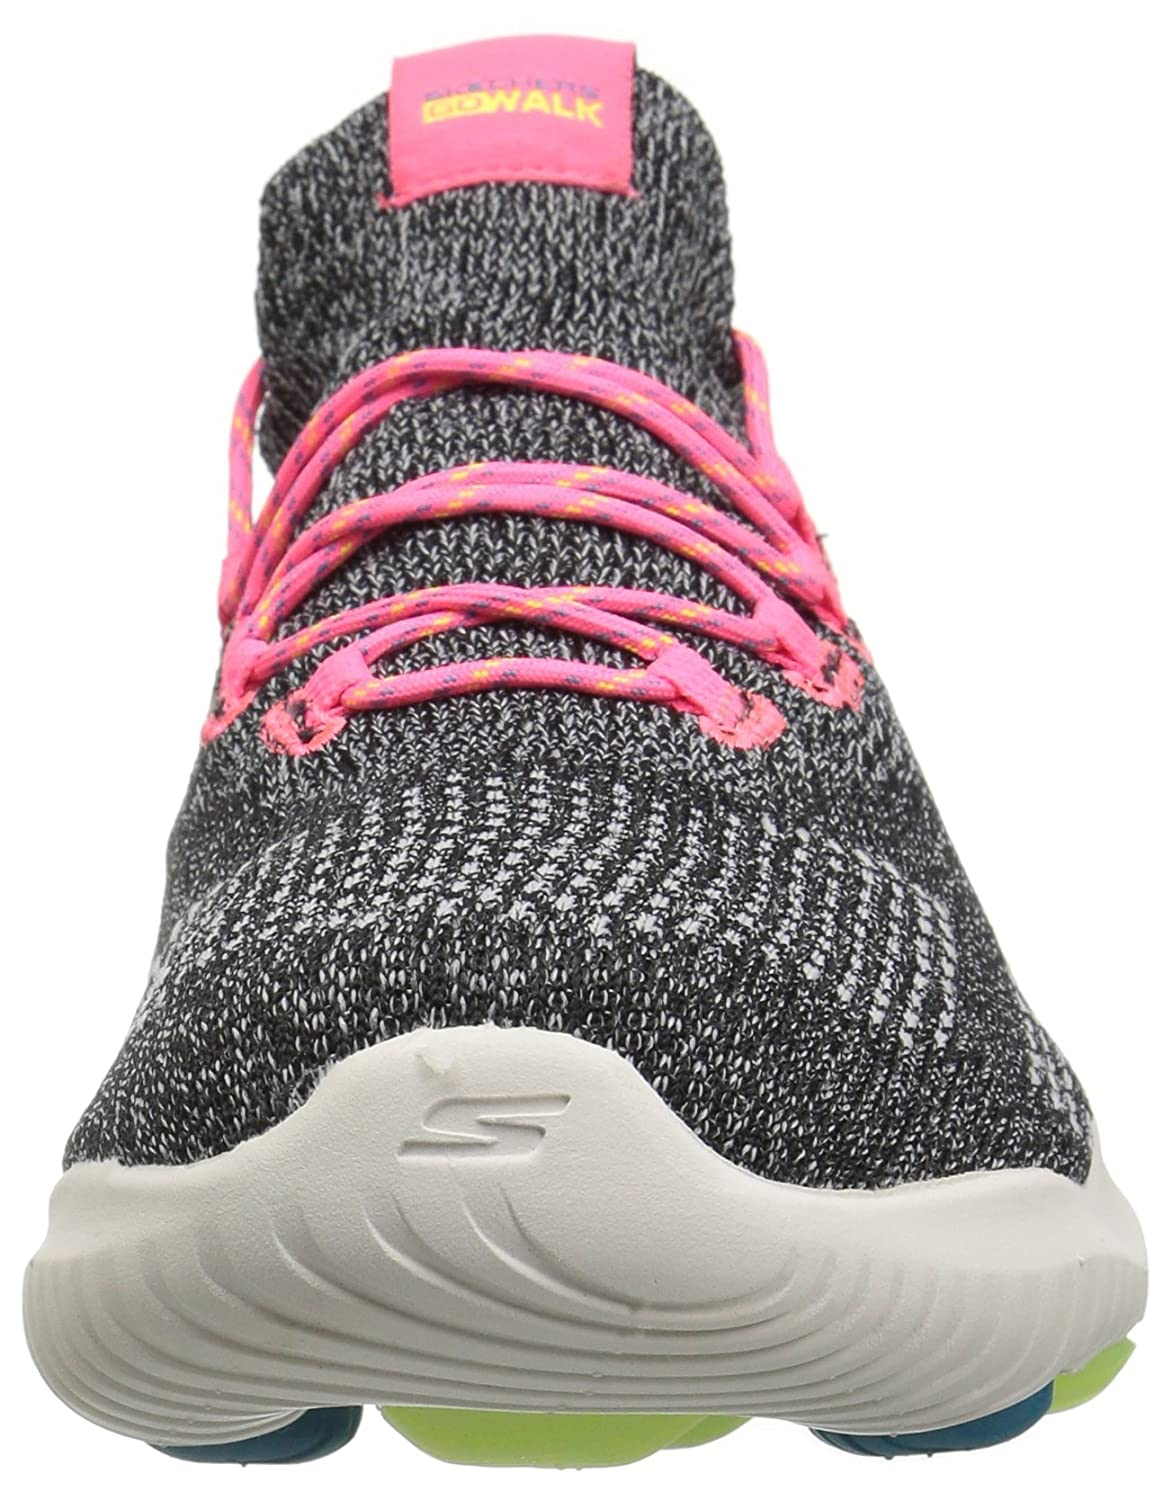 Skechers Women's Go Walk Revolution Ultra Sneaker B078GMZD5X 5 B(M) US|Black/Multi